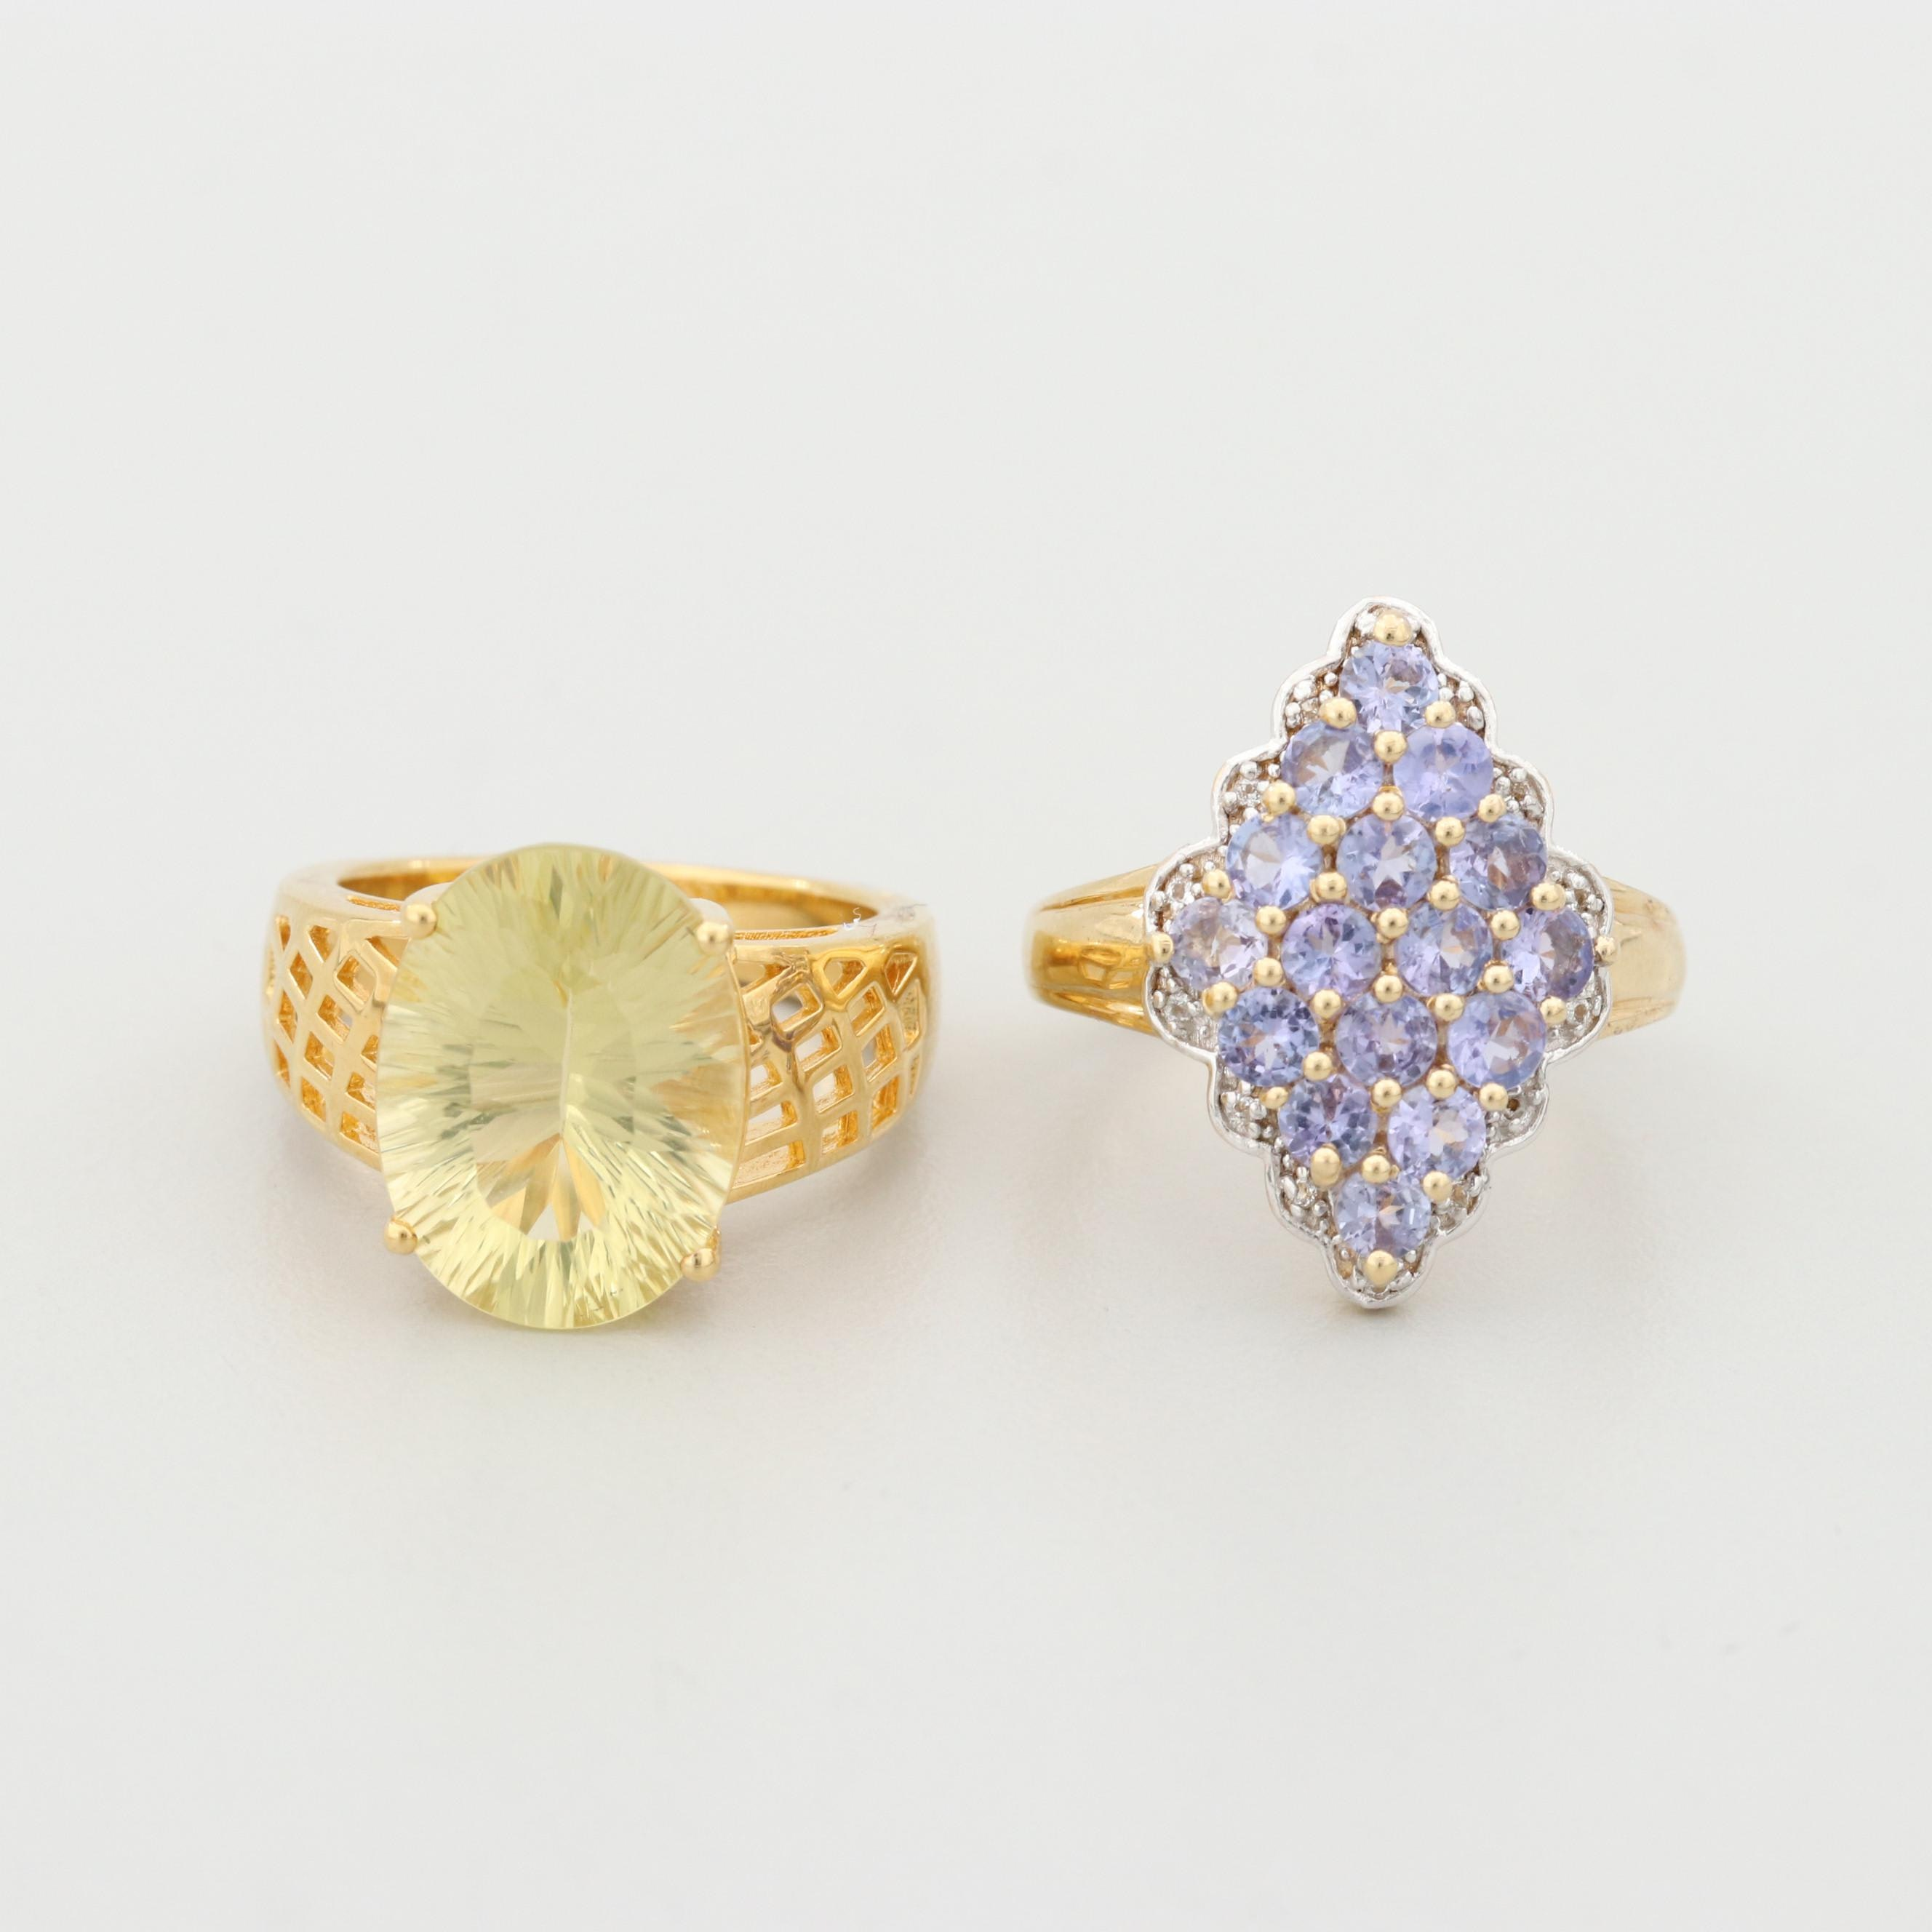 Gold Wash on Sterling Silver Citrine and Tanzanite Rings